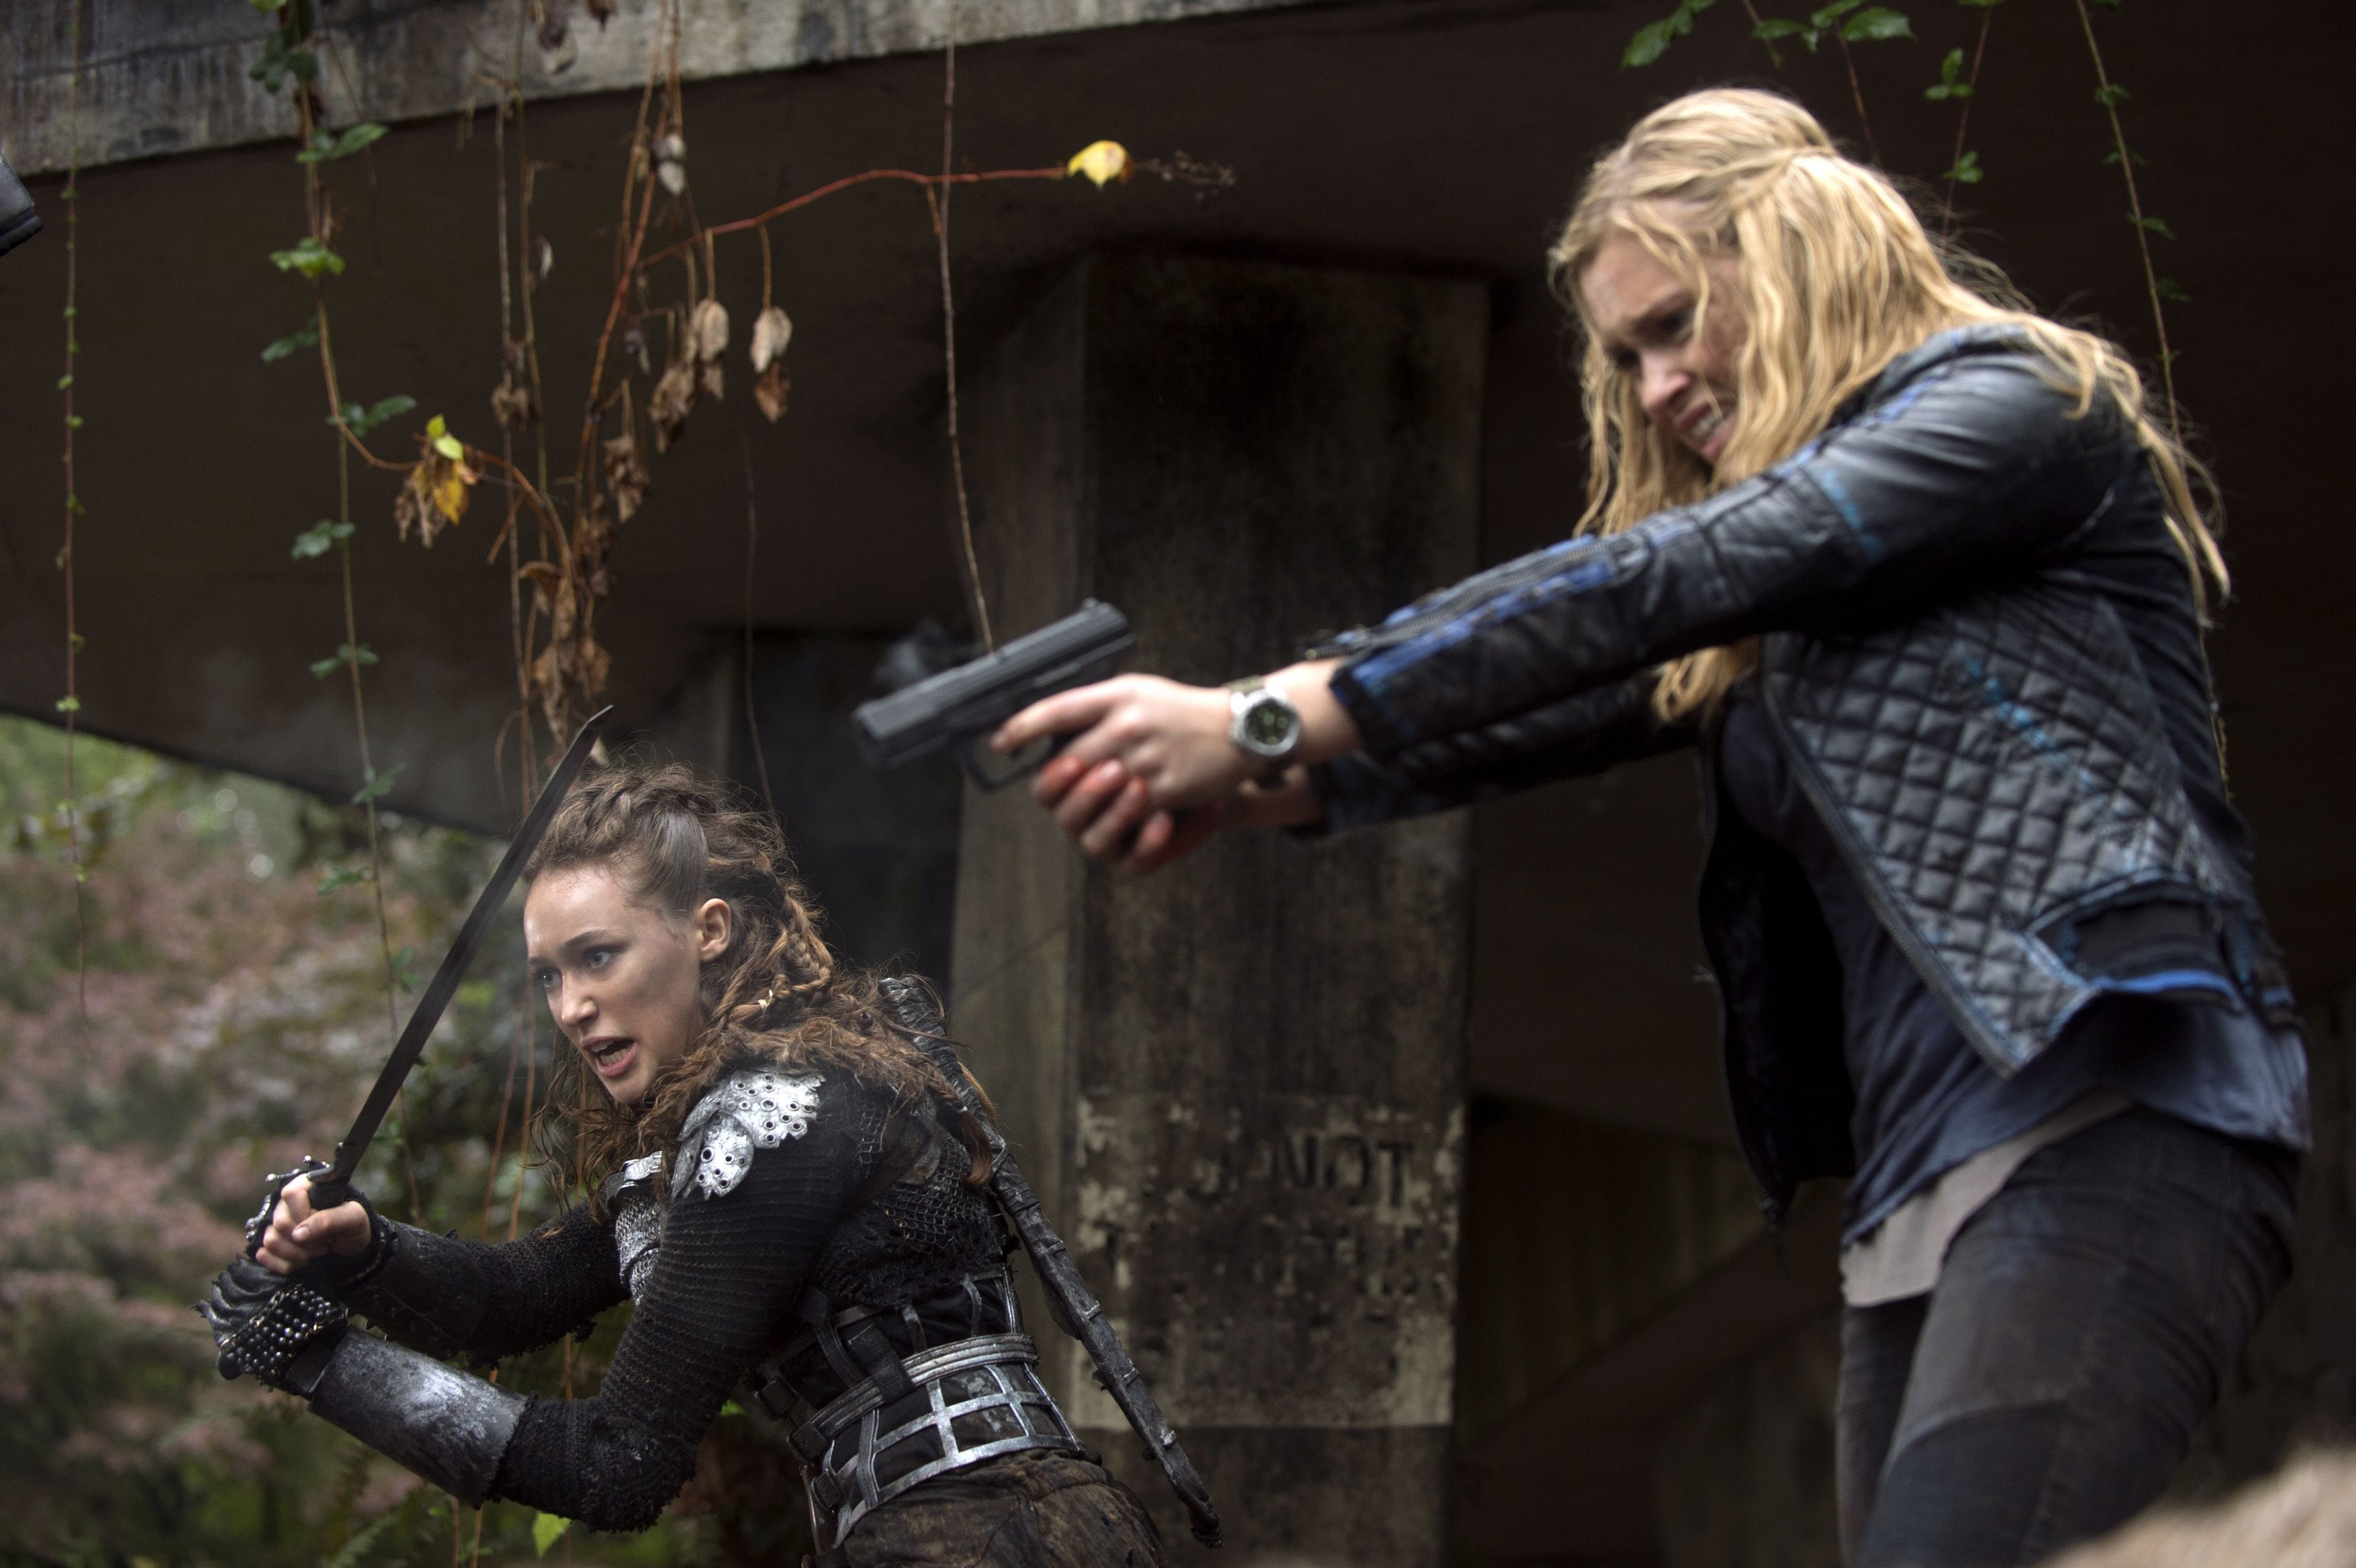 How can I get this picture of lexa and clarke that